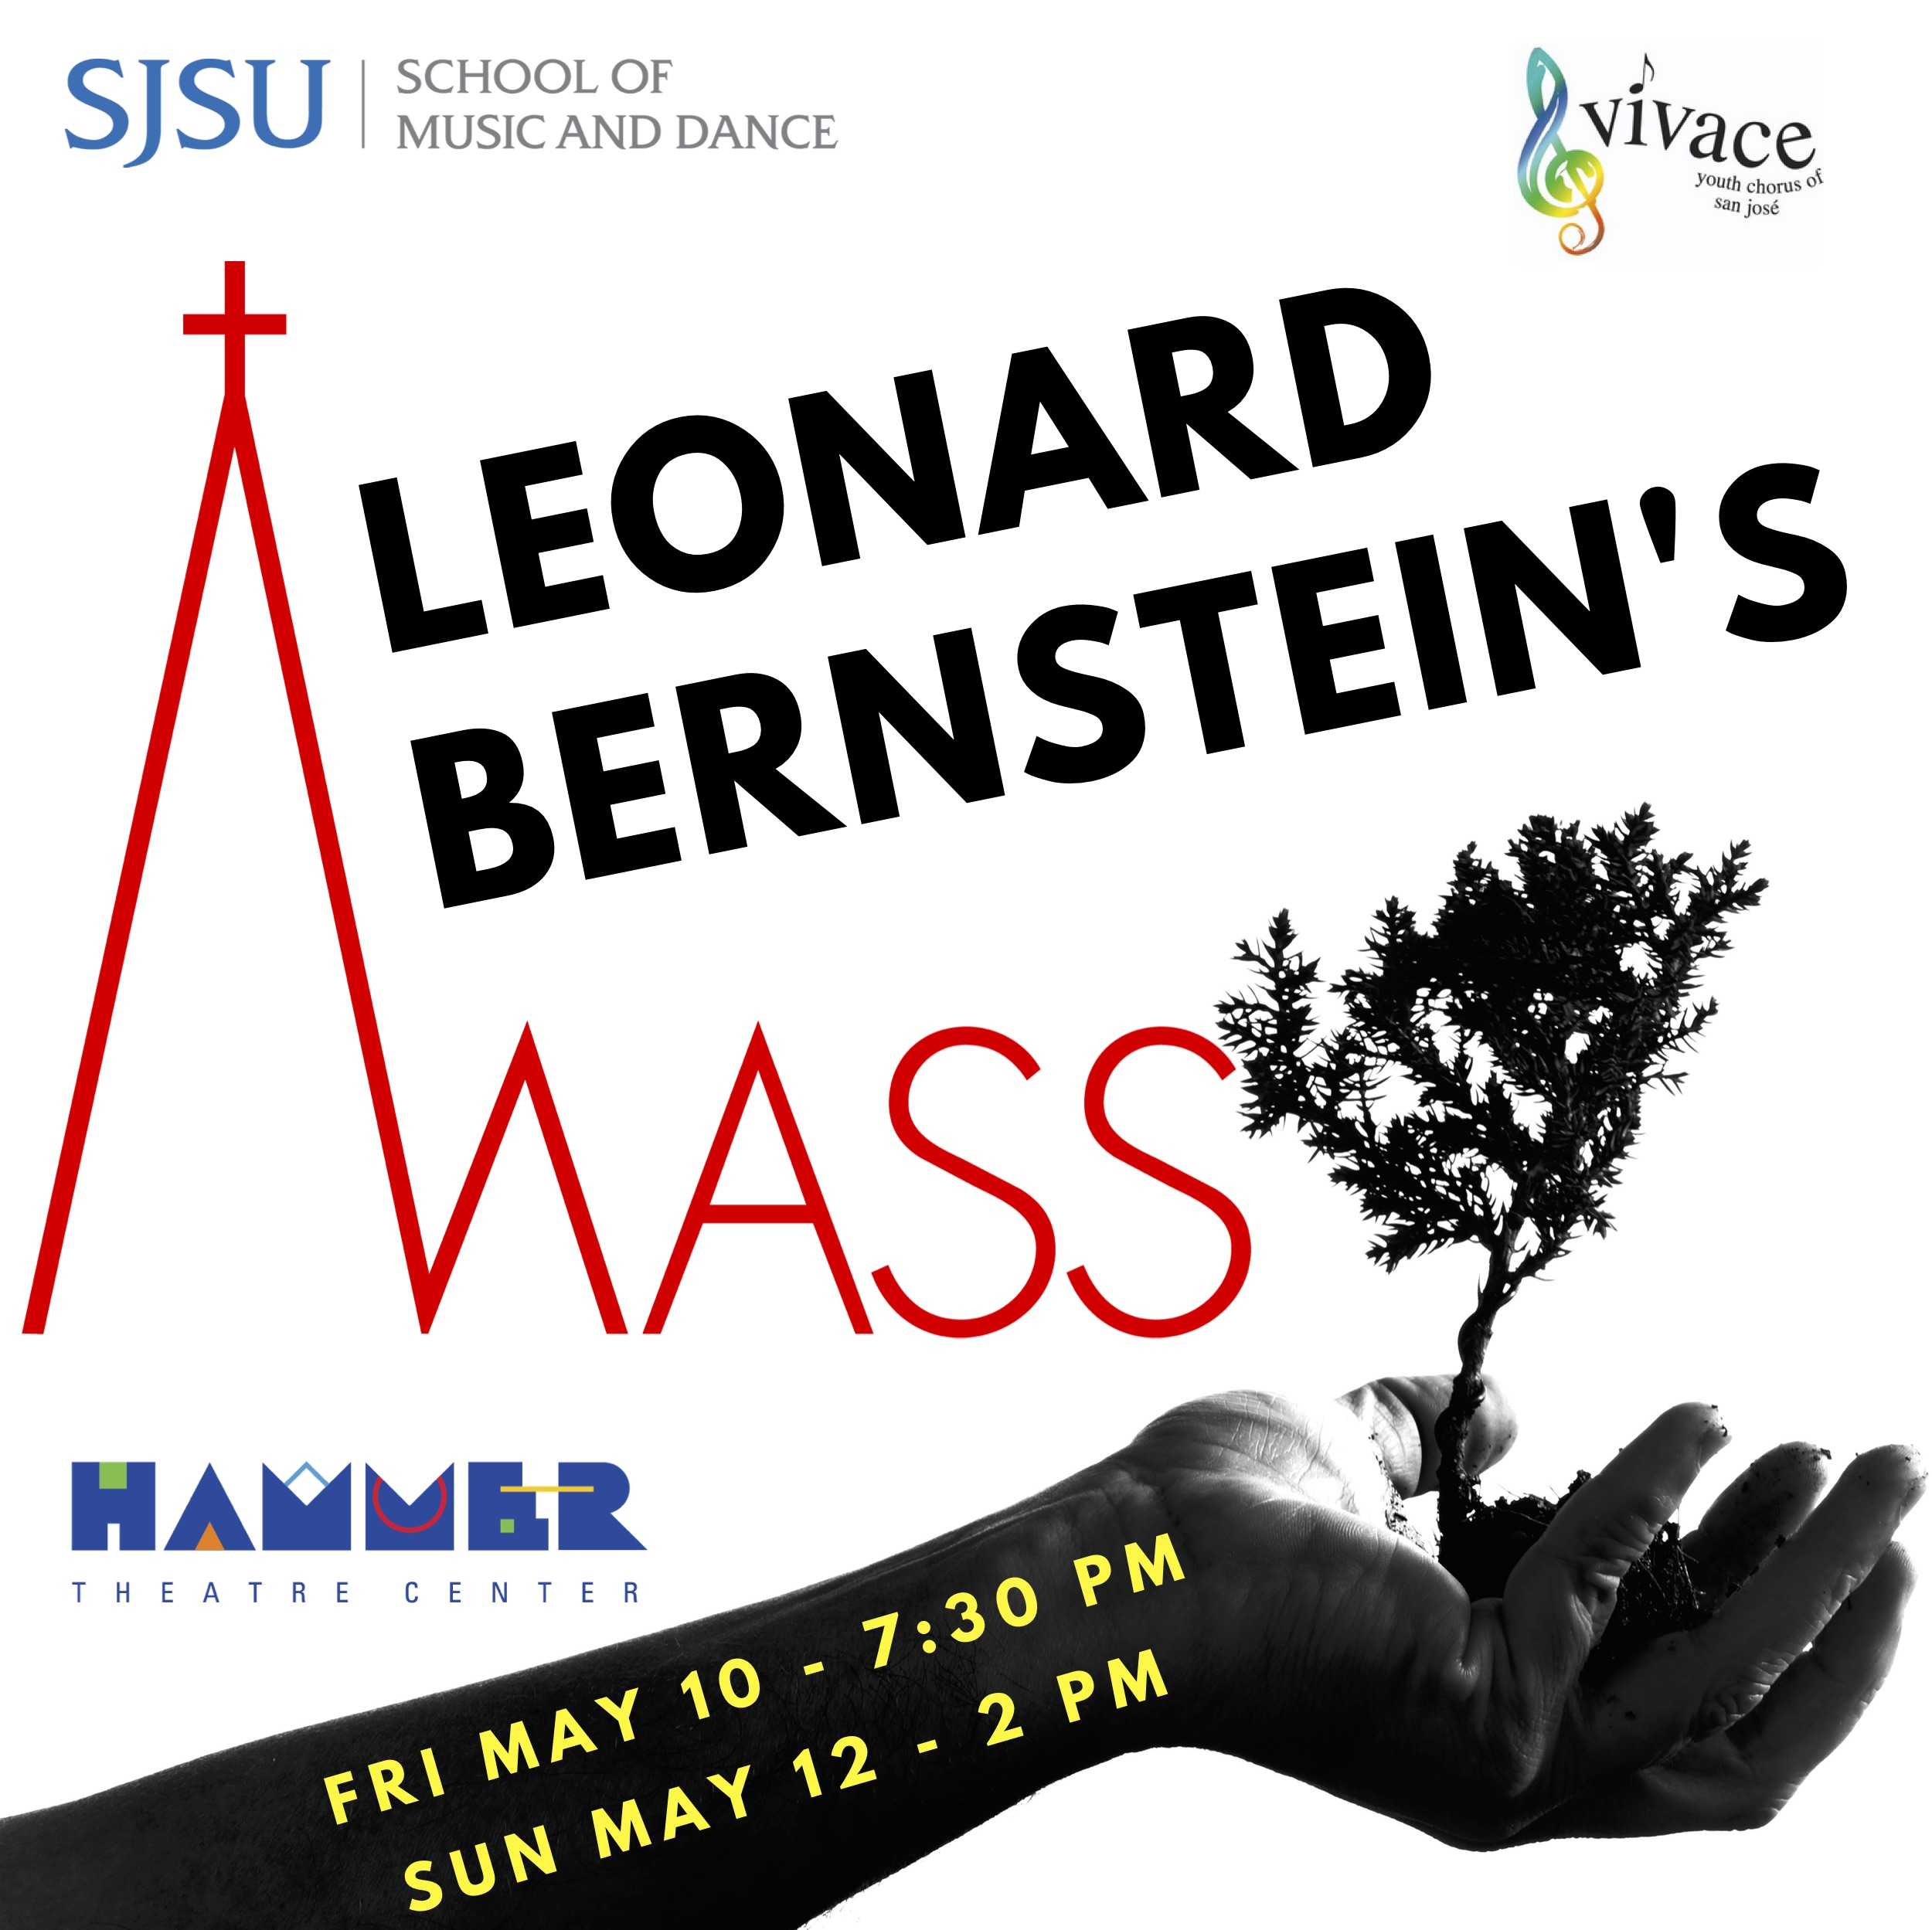 Bernstein Mass Performance